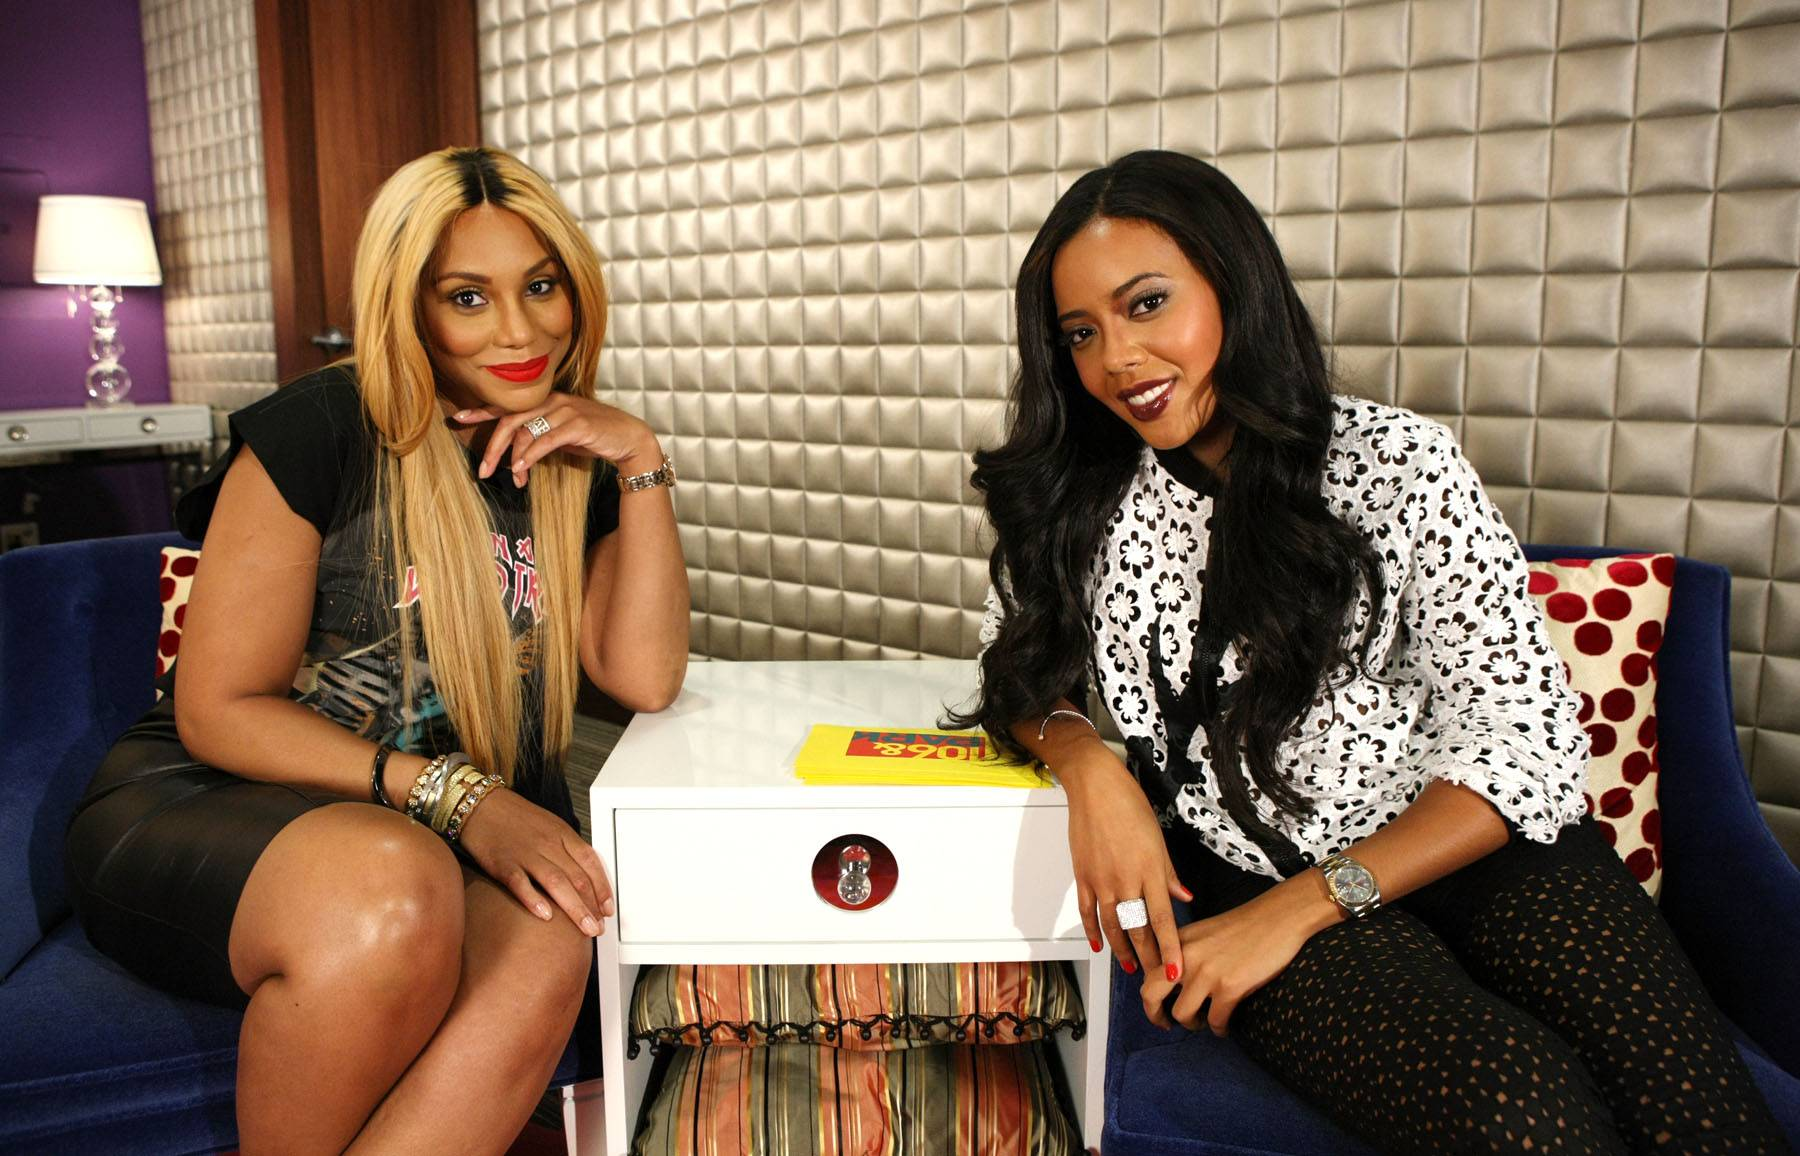 The Girls - Tamar Braxton and host Angela Simmons sit backstage to chat. (Photo: Bennett Raglin/BET/Getty Images for BET)